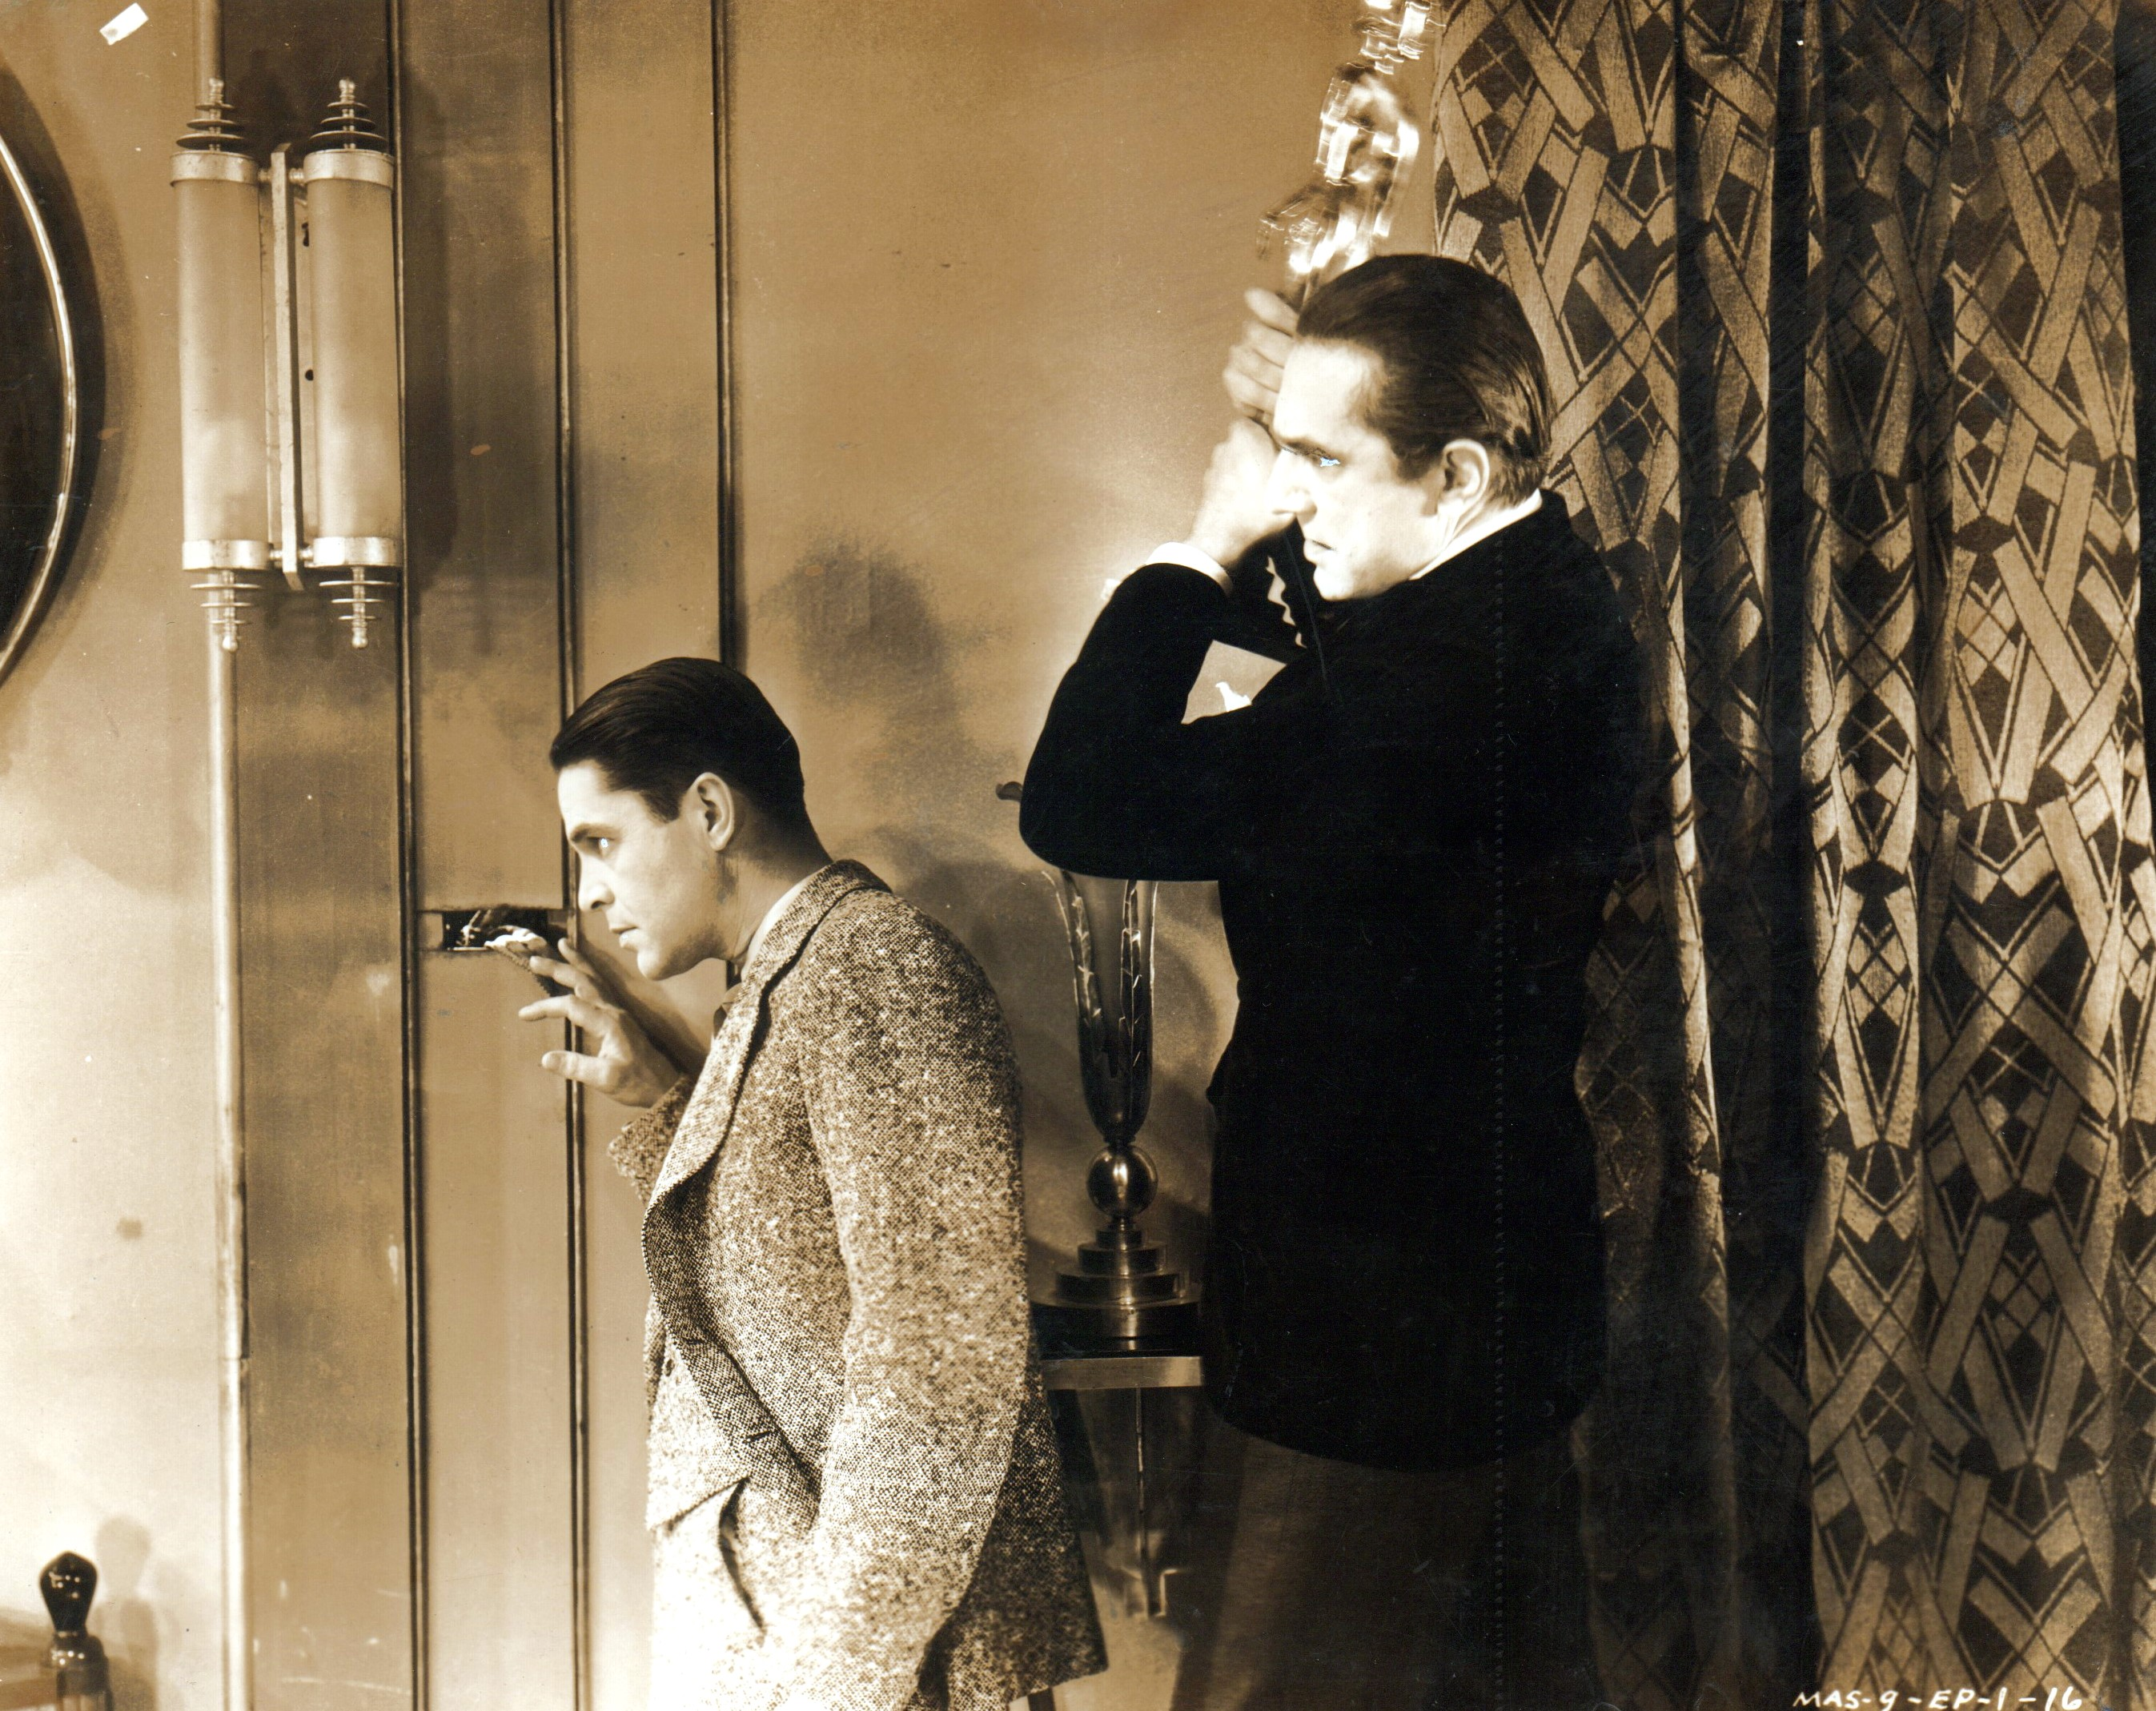 Bela Lugosi and Malcolm McGregor in The Whispering Shadow (1933)